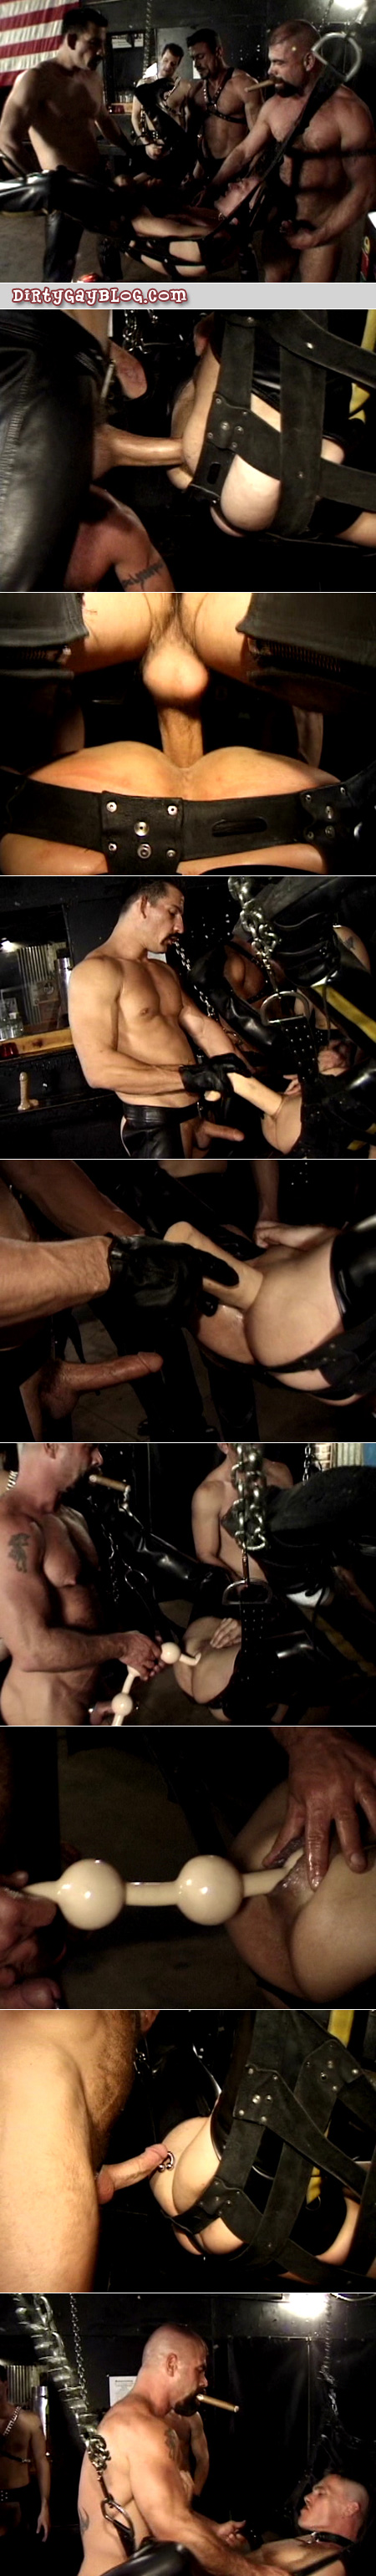 Men in a leather bar take turns fucking a power bottom in a leather sling.